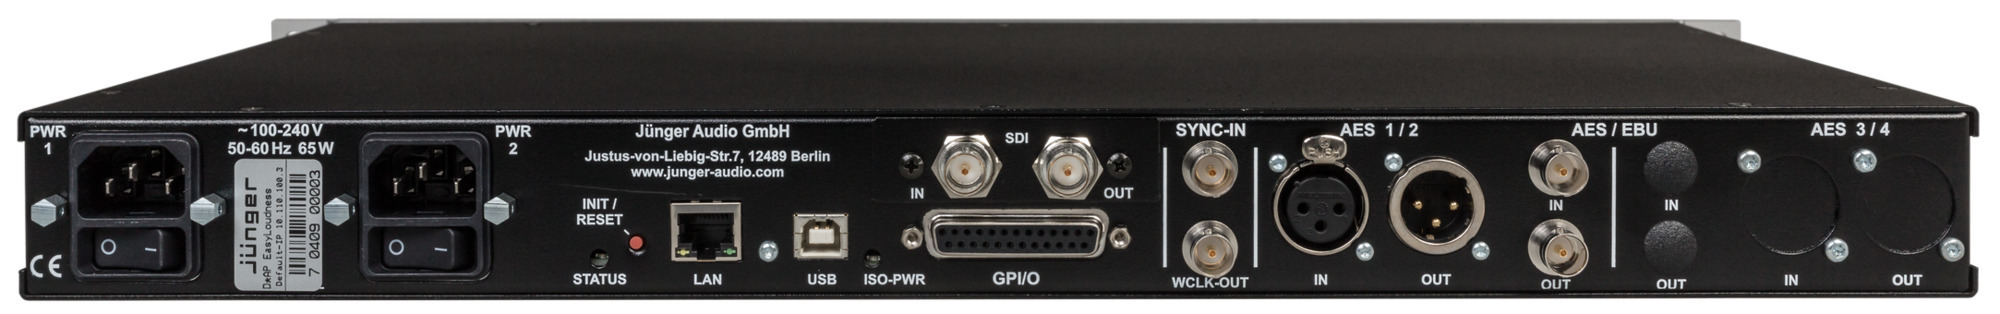 EASY LOUDNESS SDI (rear view)